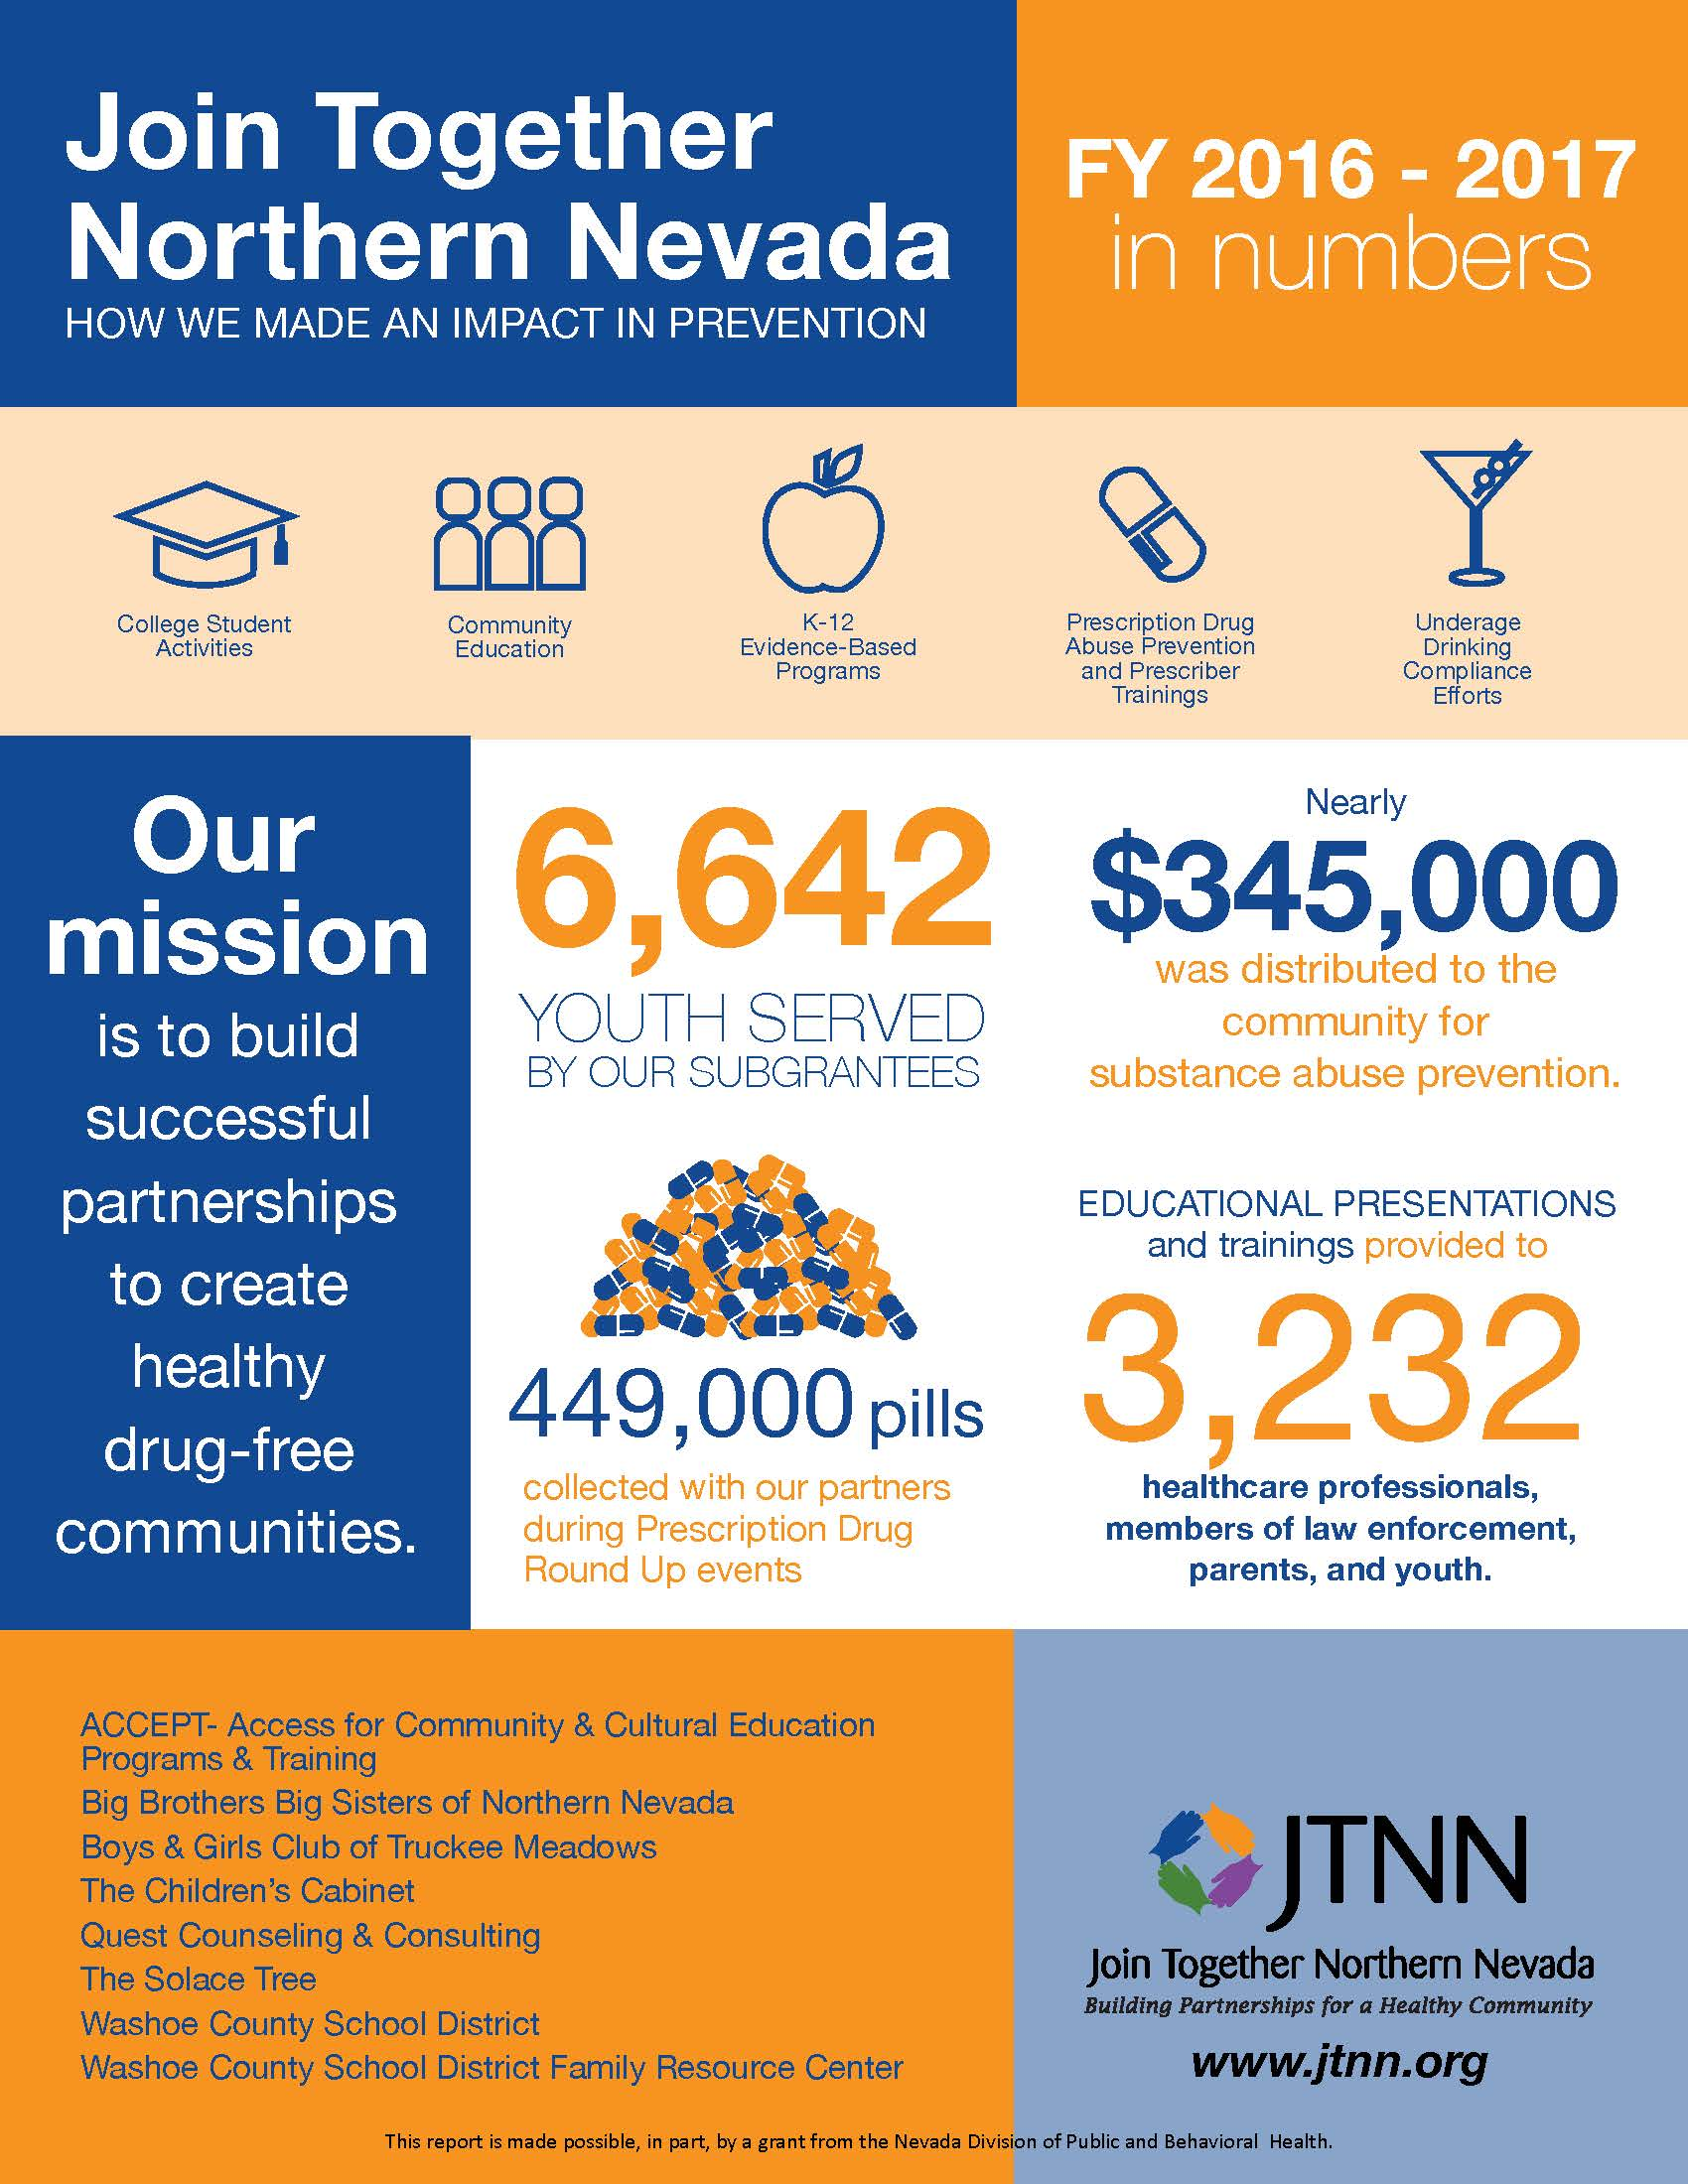 JTNN 16-17 Annual Report Infographic